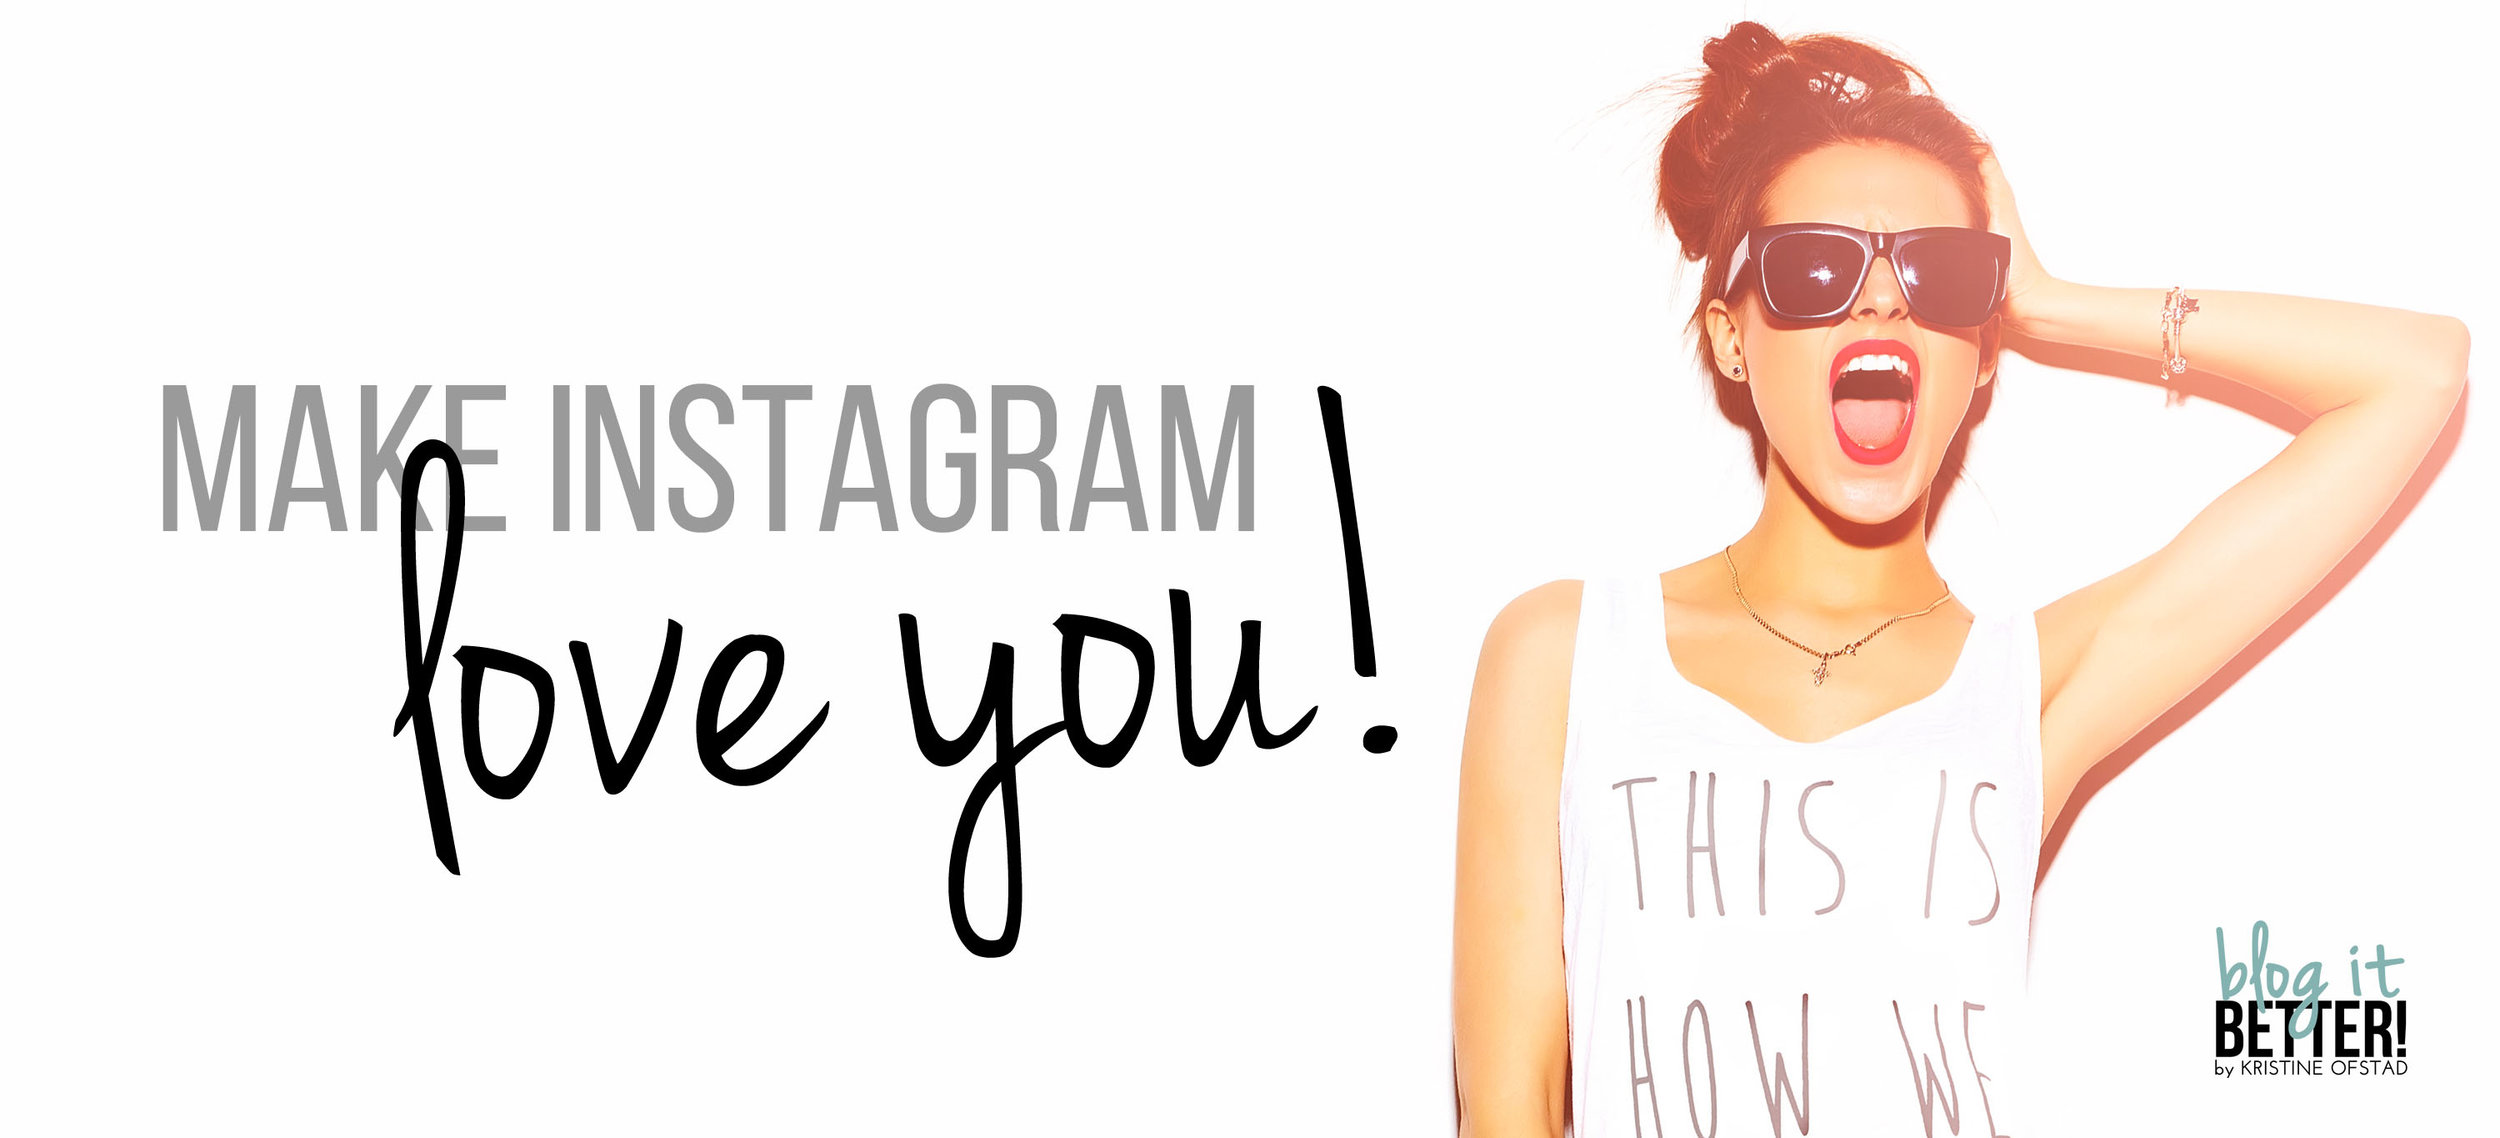 Instagram Revamp - make Instagram love you!